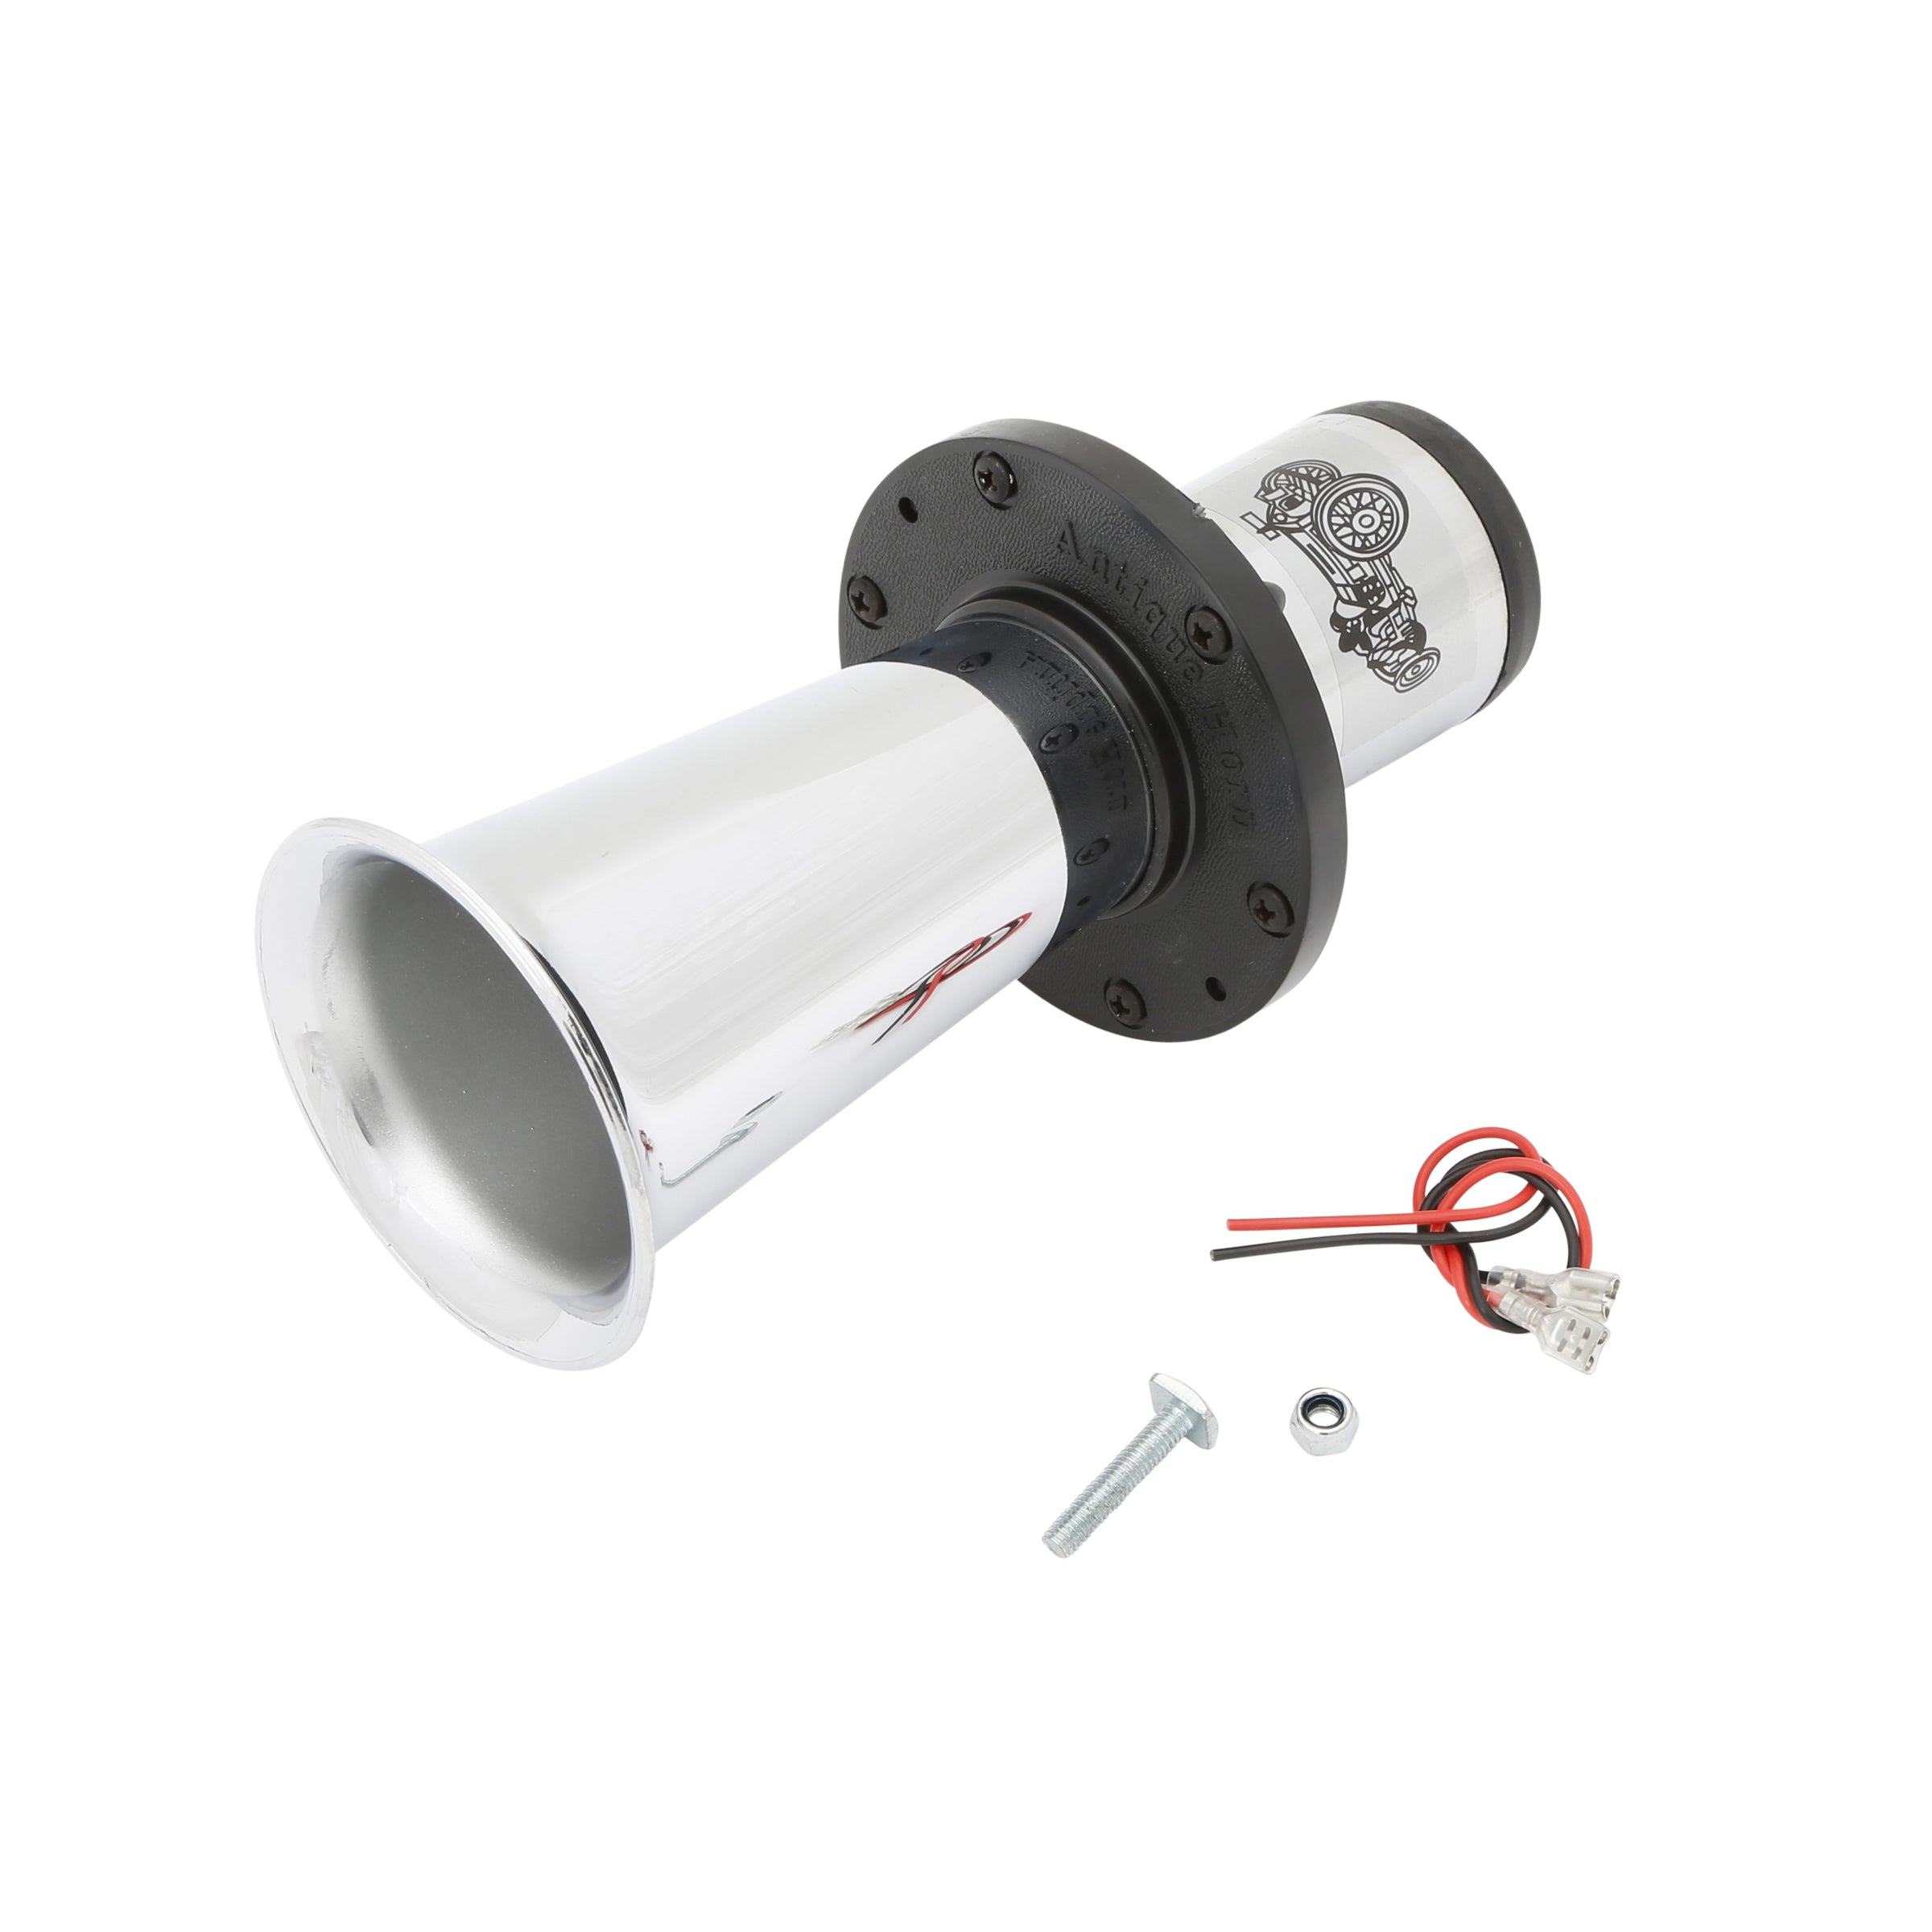 Ah-ooga Replacement Horn • Universal